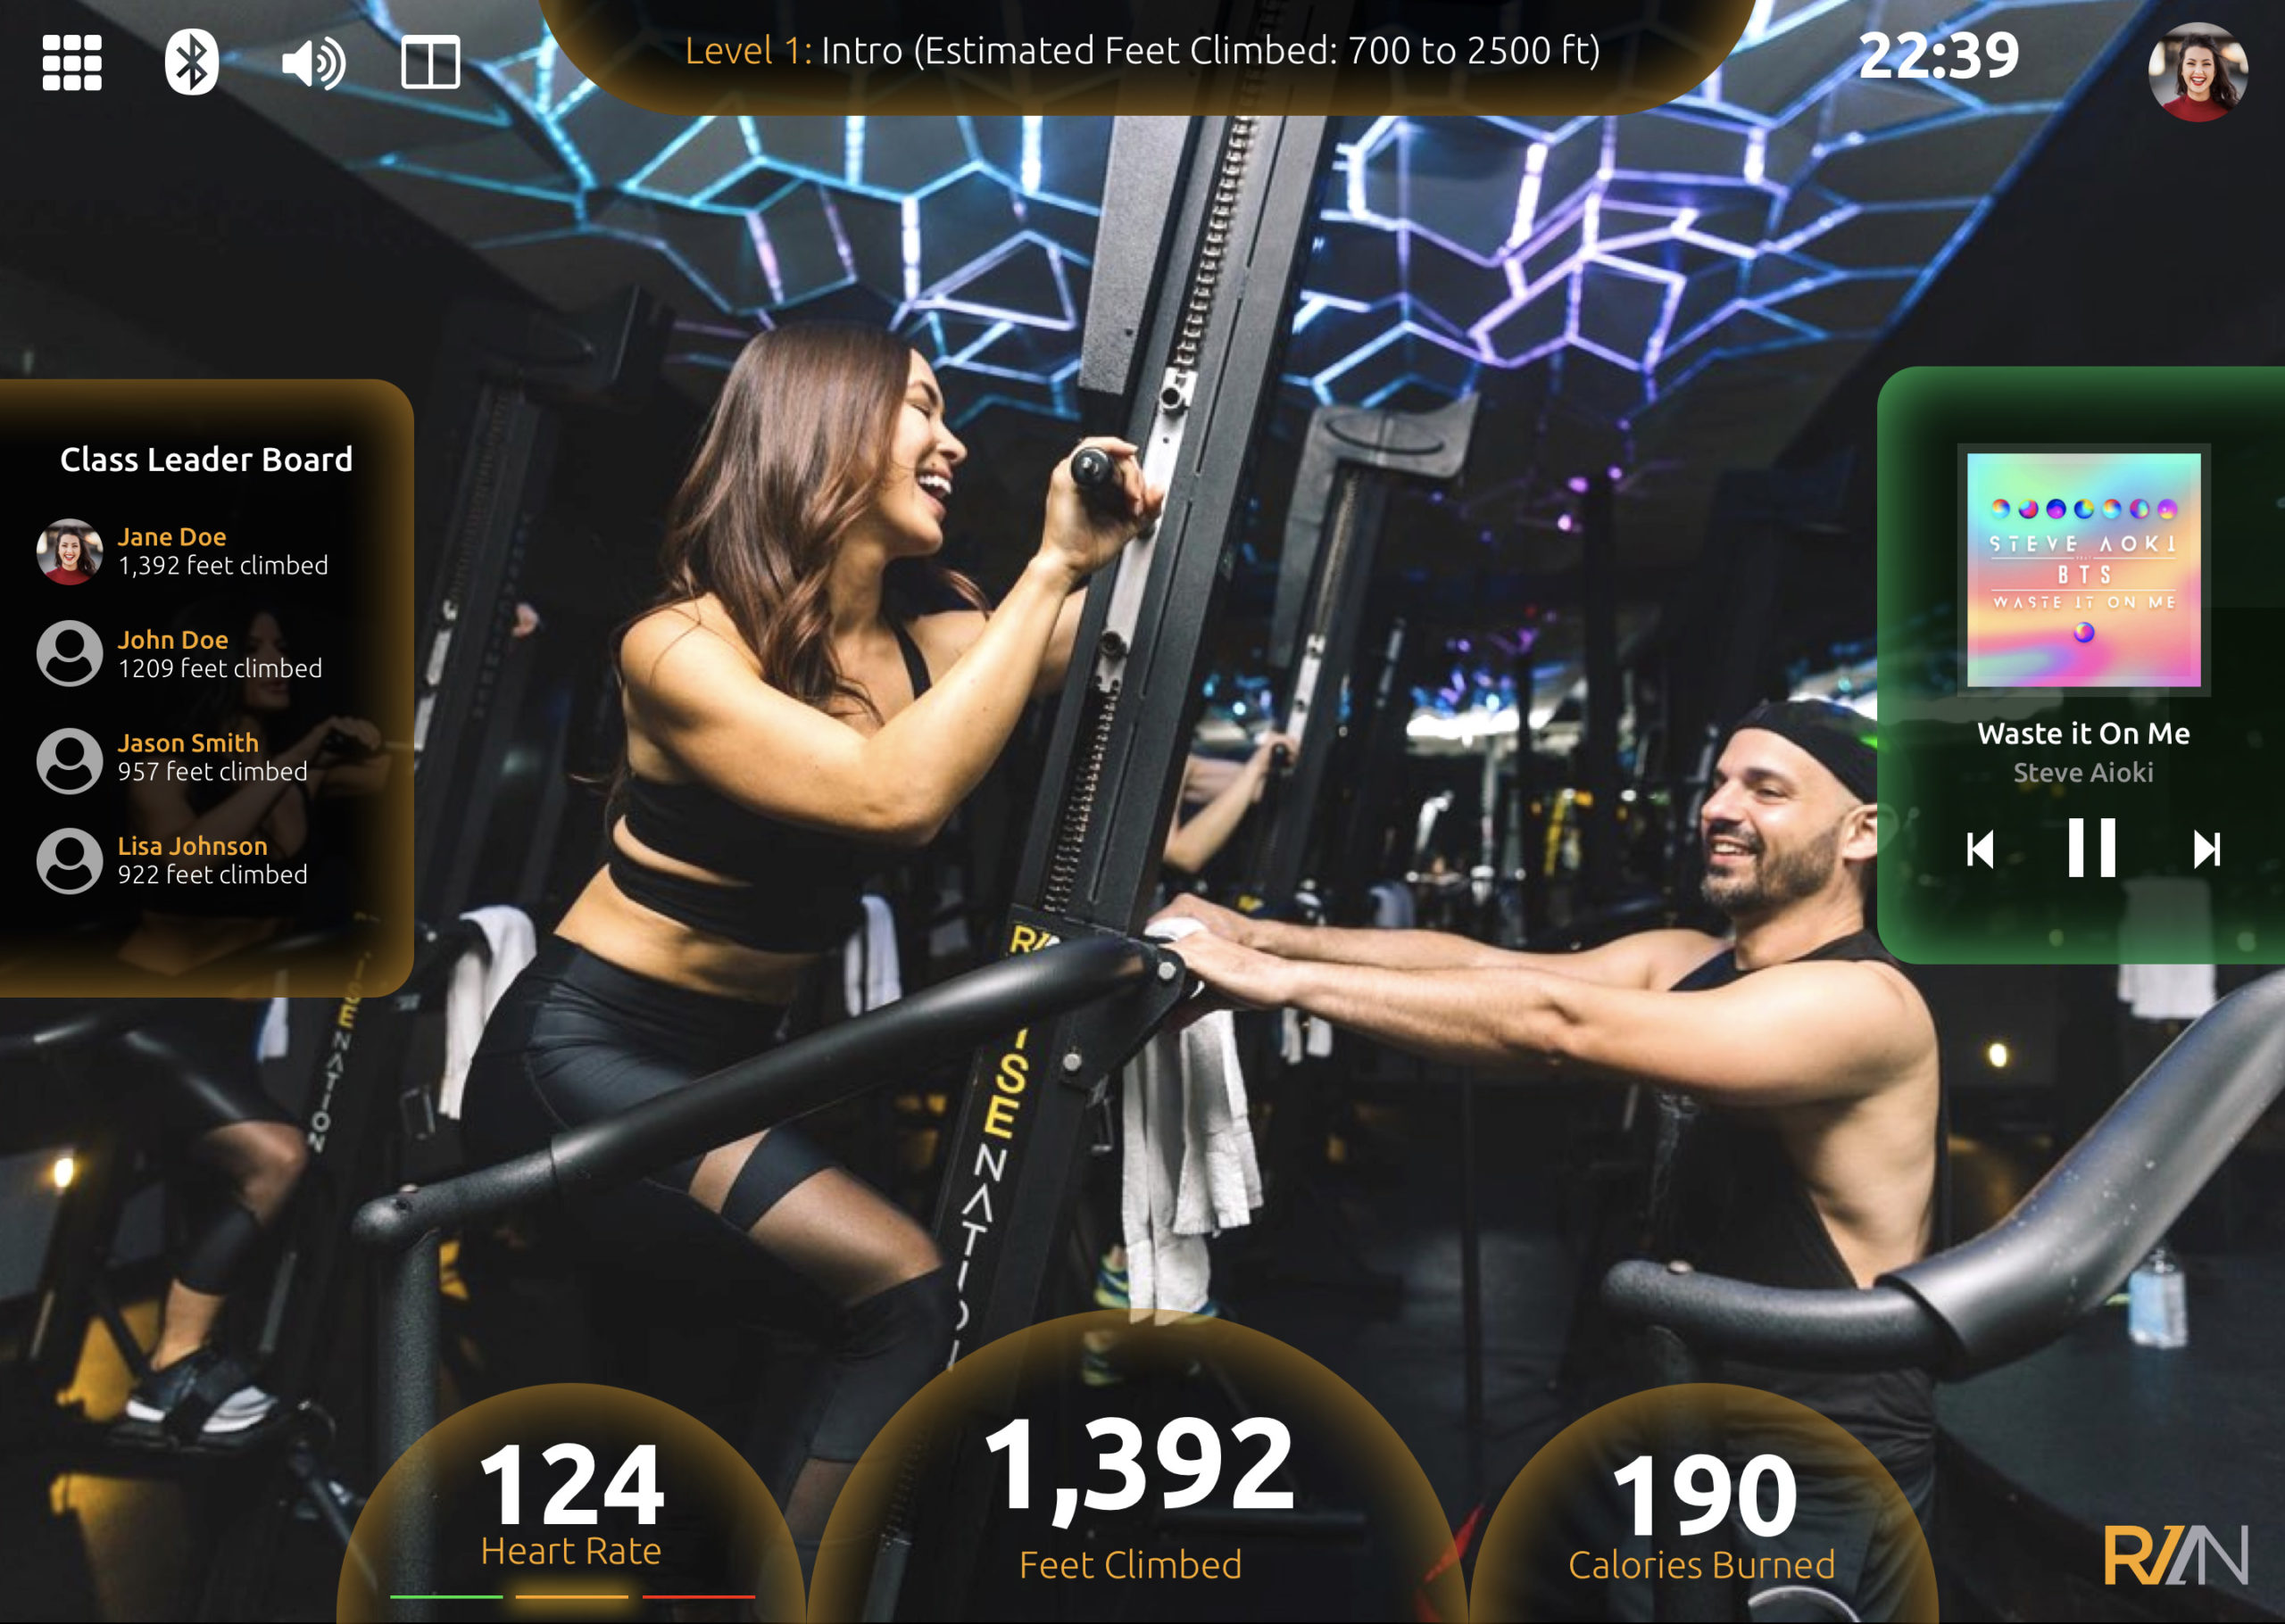 Group Fitness App